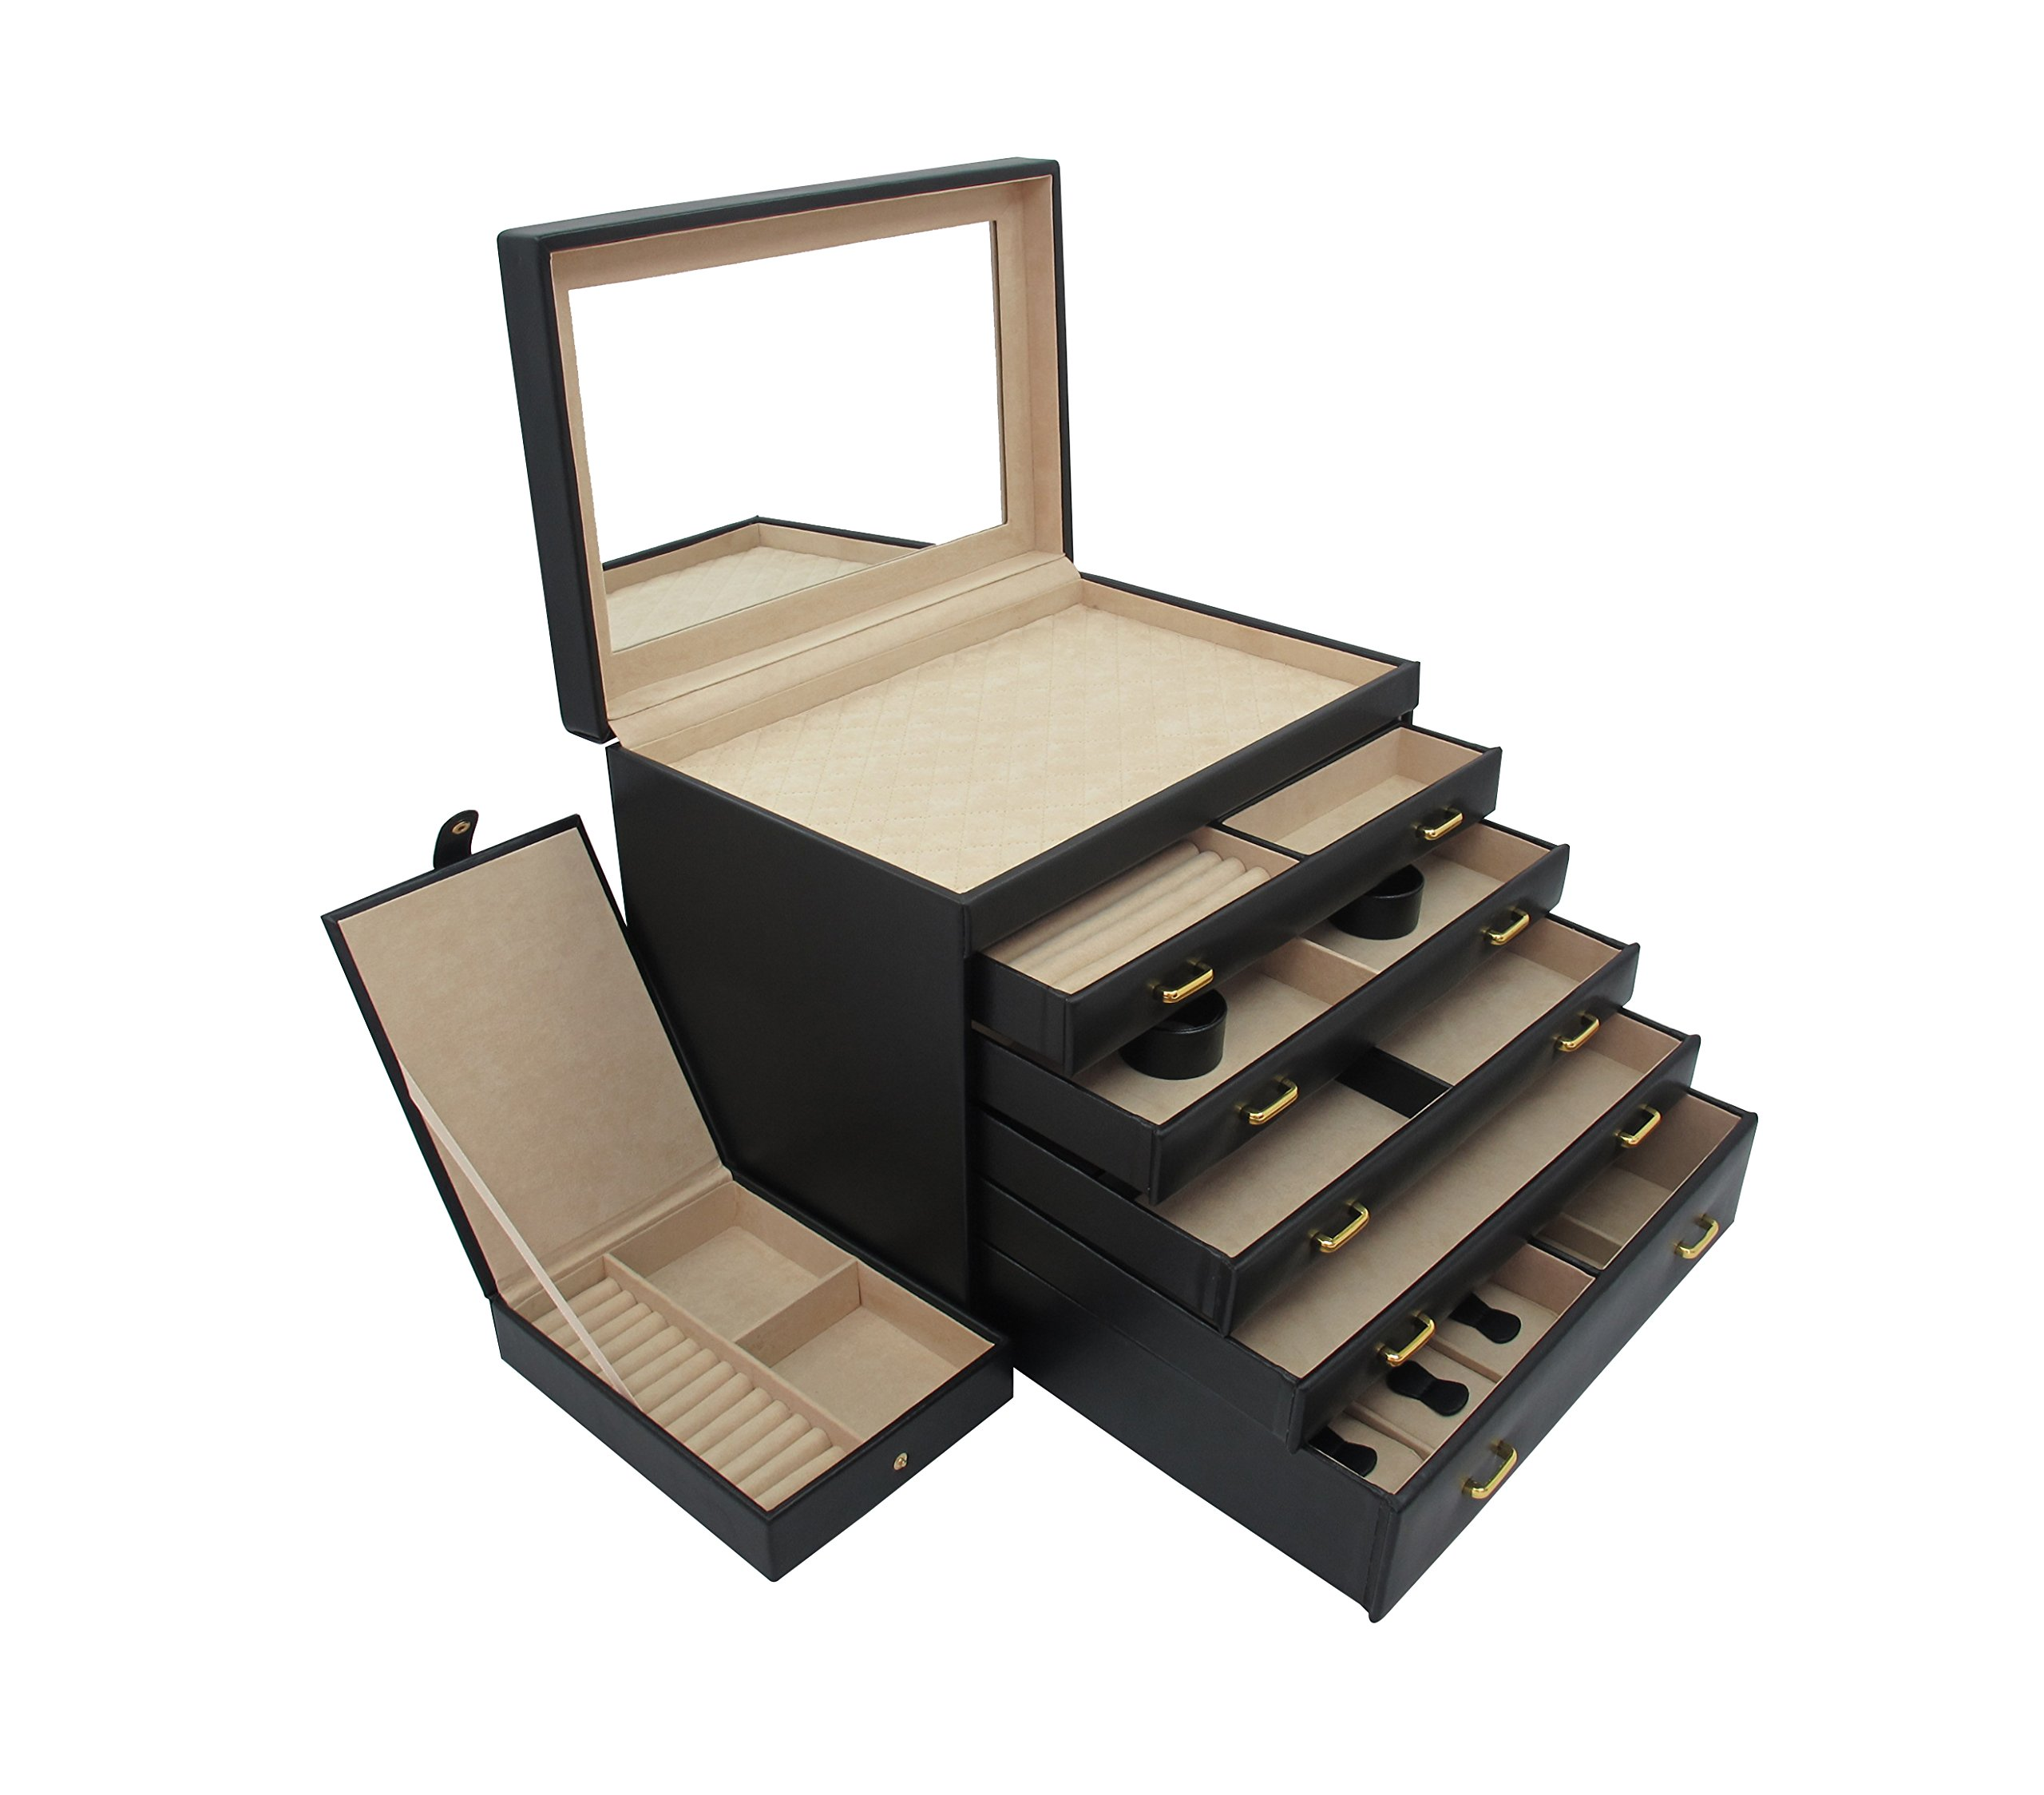 Cordays Extra Large Complete Jewelry Dresser Box Finely Handcrafted in Premium Quality Vegan Leather with 5 Drawers and Travel Case CDL-10026